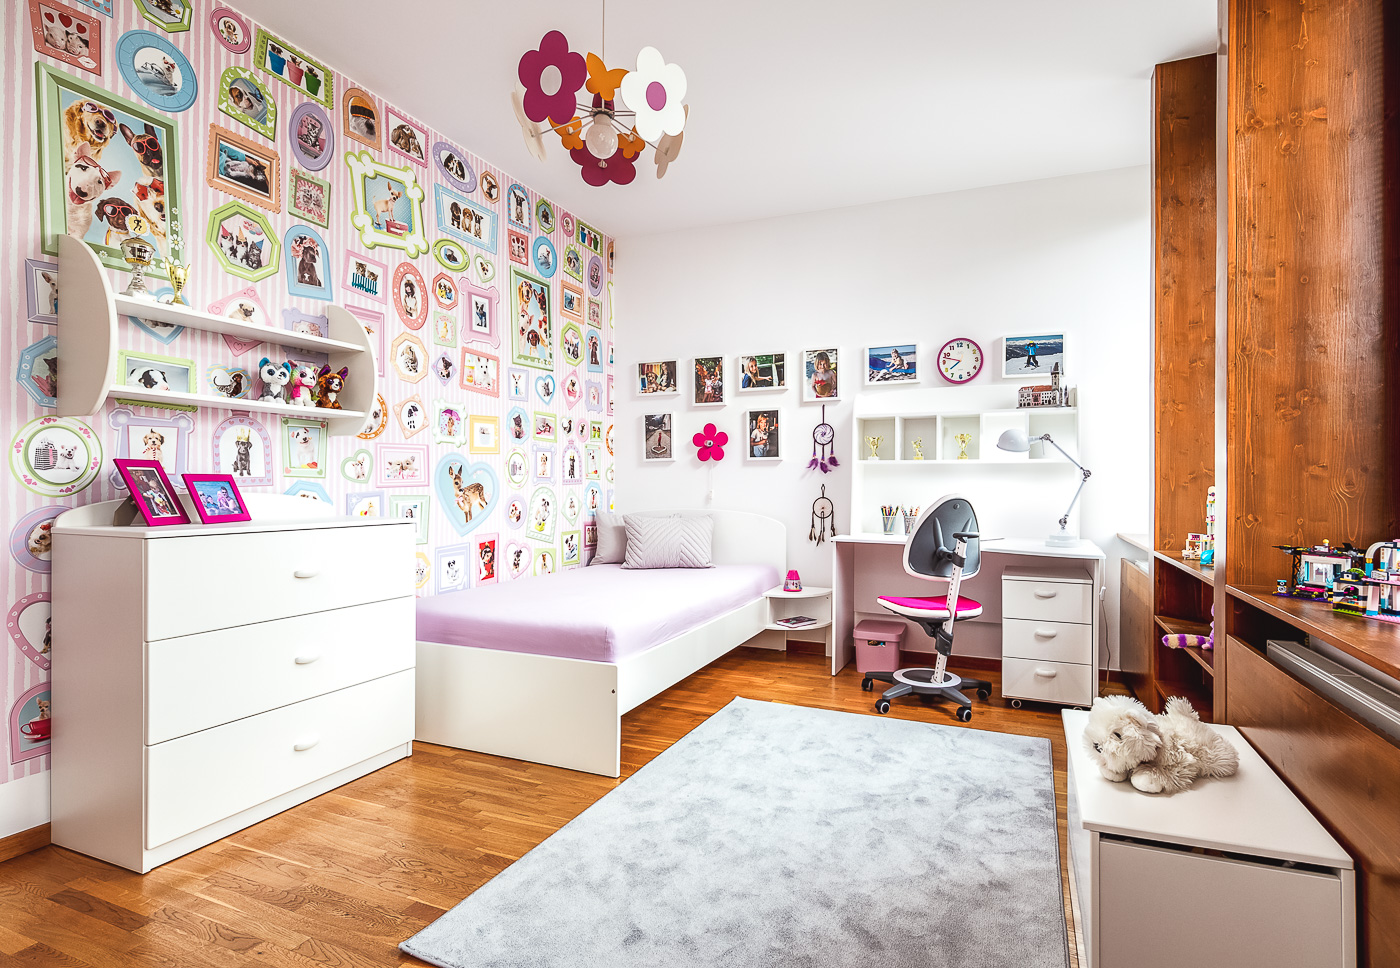 Girls' room with a funny dog-themed wallpaper